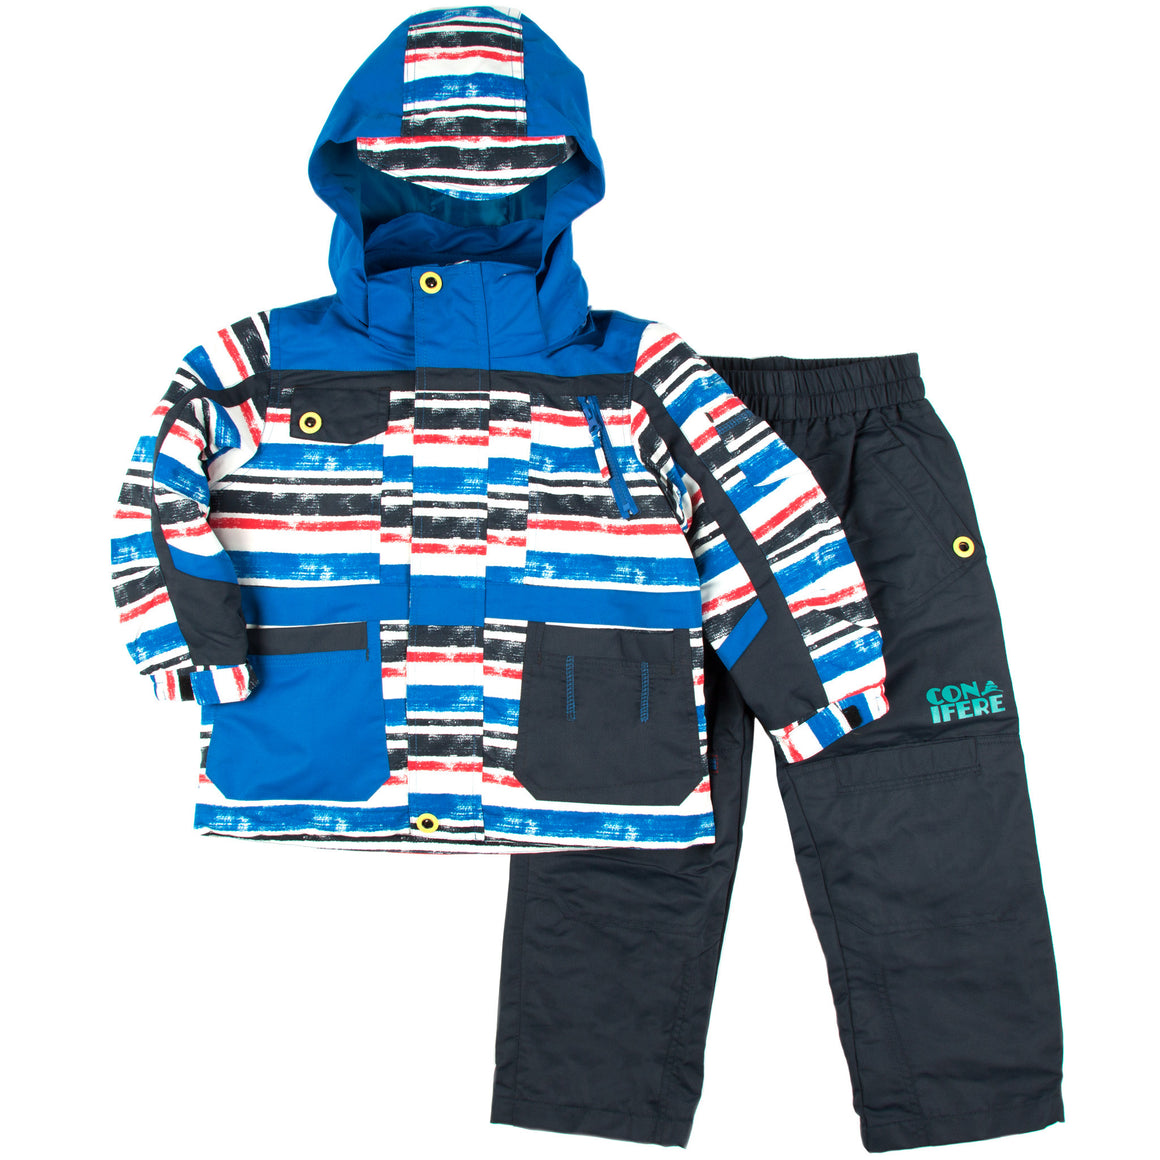 Infant & Toddler Boy's 3-in-1 Set